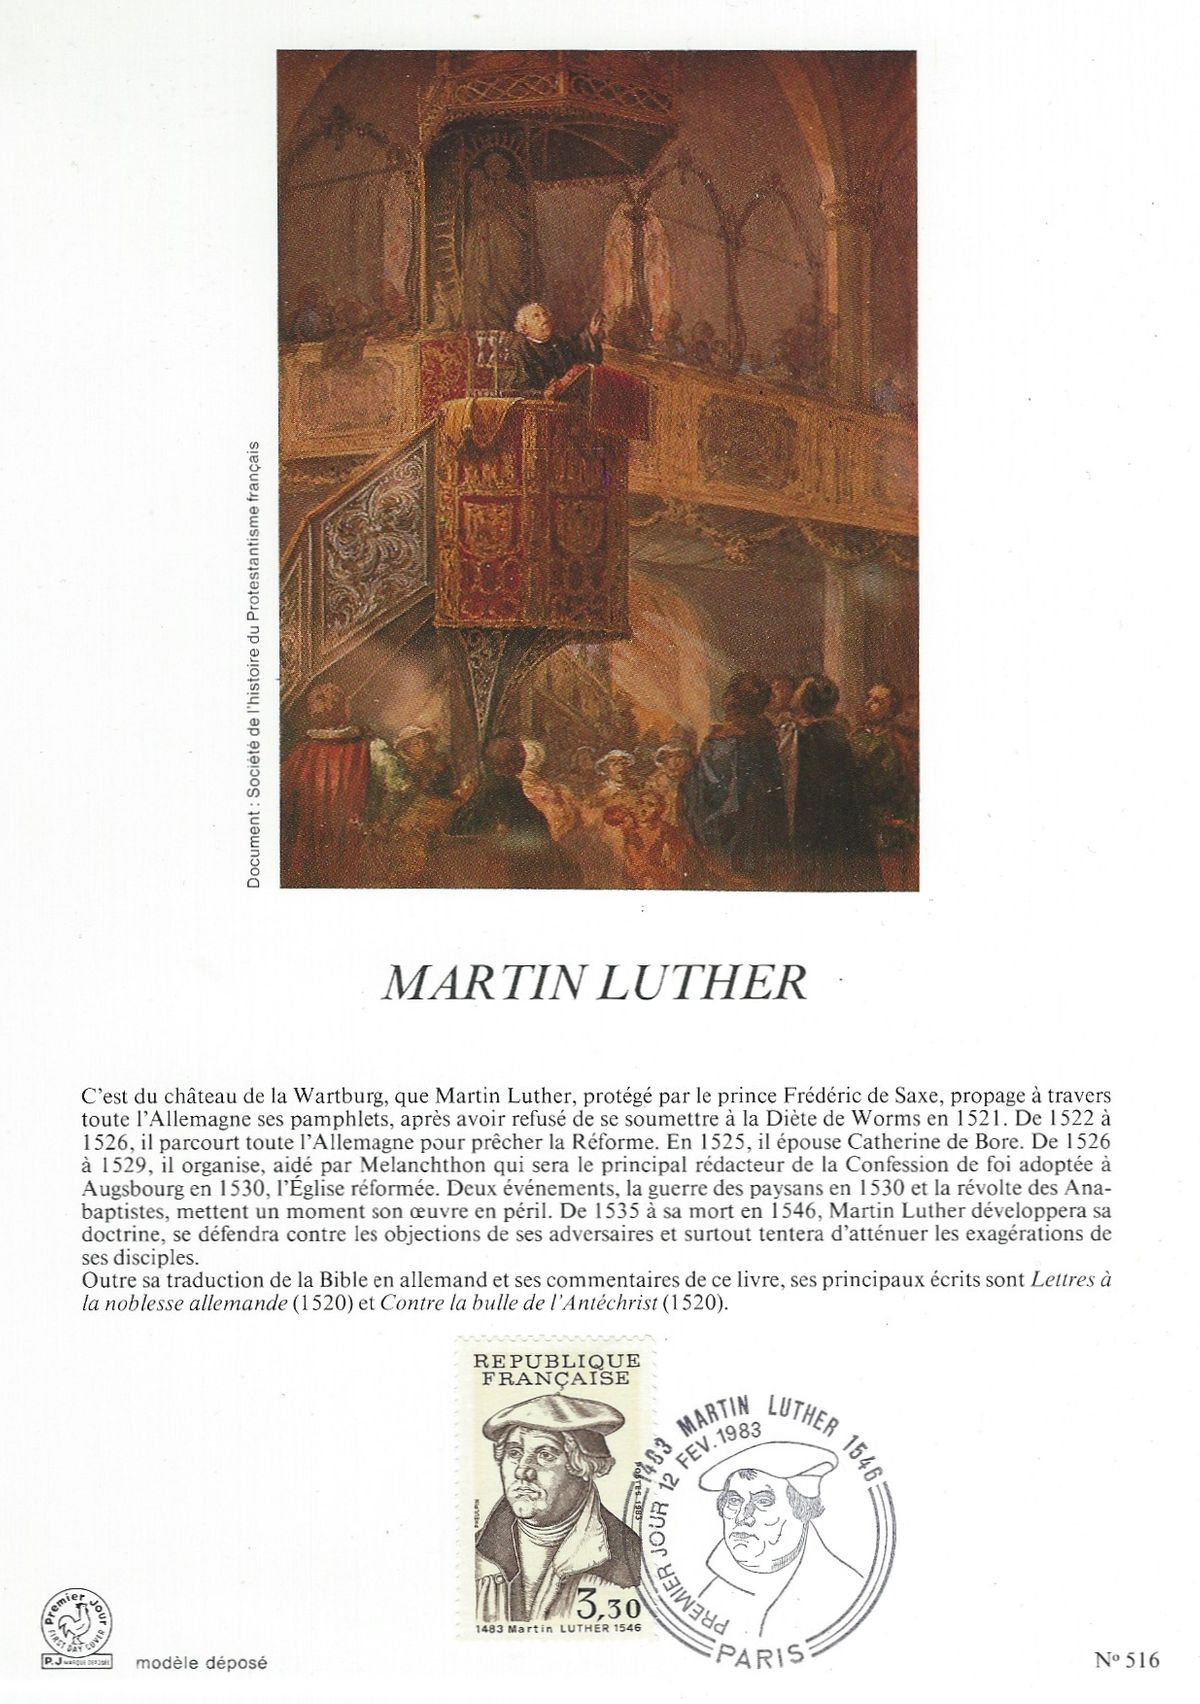 500. Geburtstag Martin Luther, Martin Luther, Luther, Frankreich, Reformator, France, Michel 2382, Jean Pheulpin